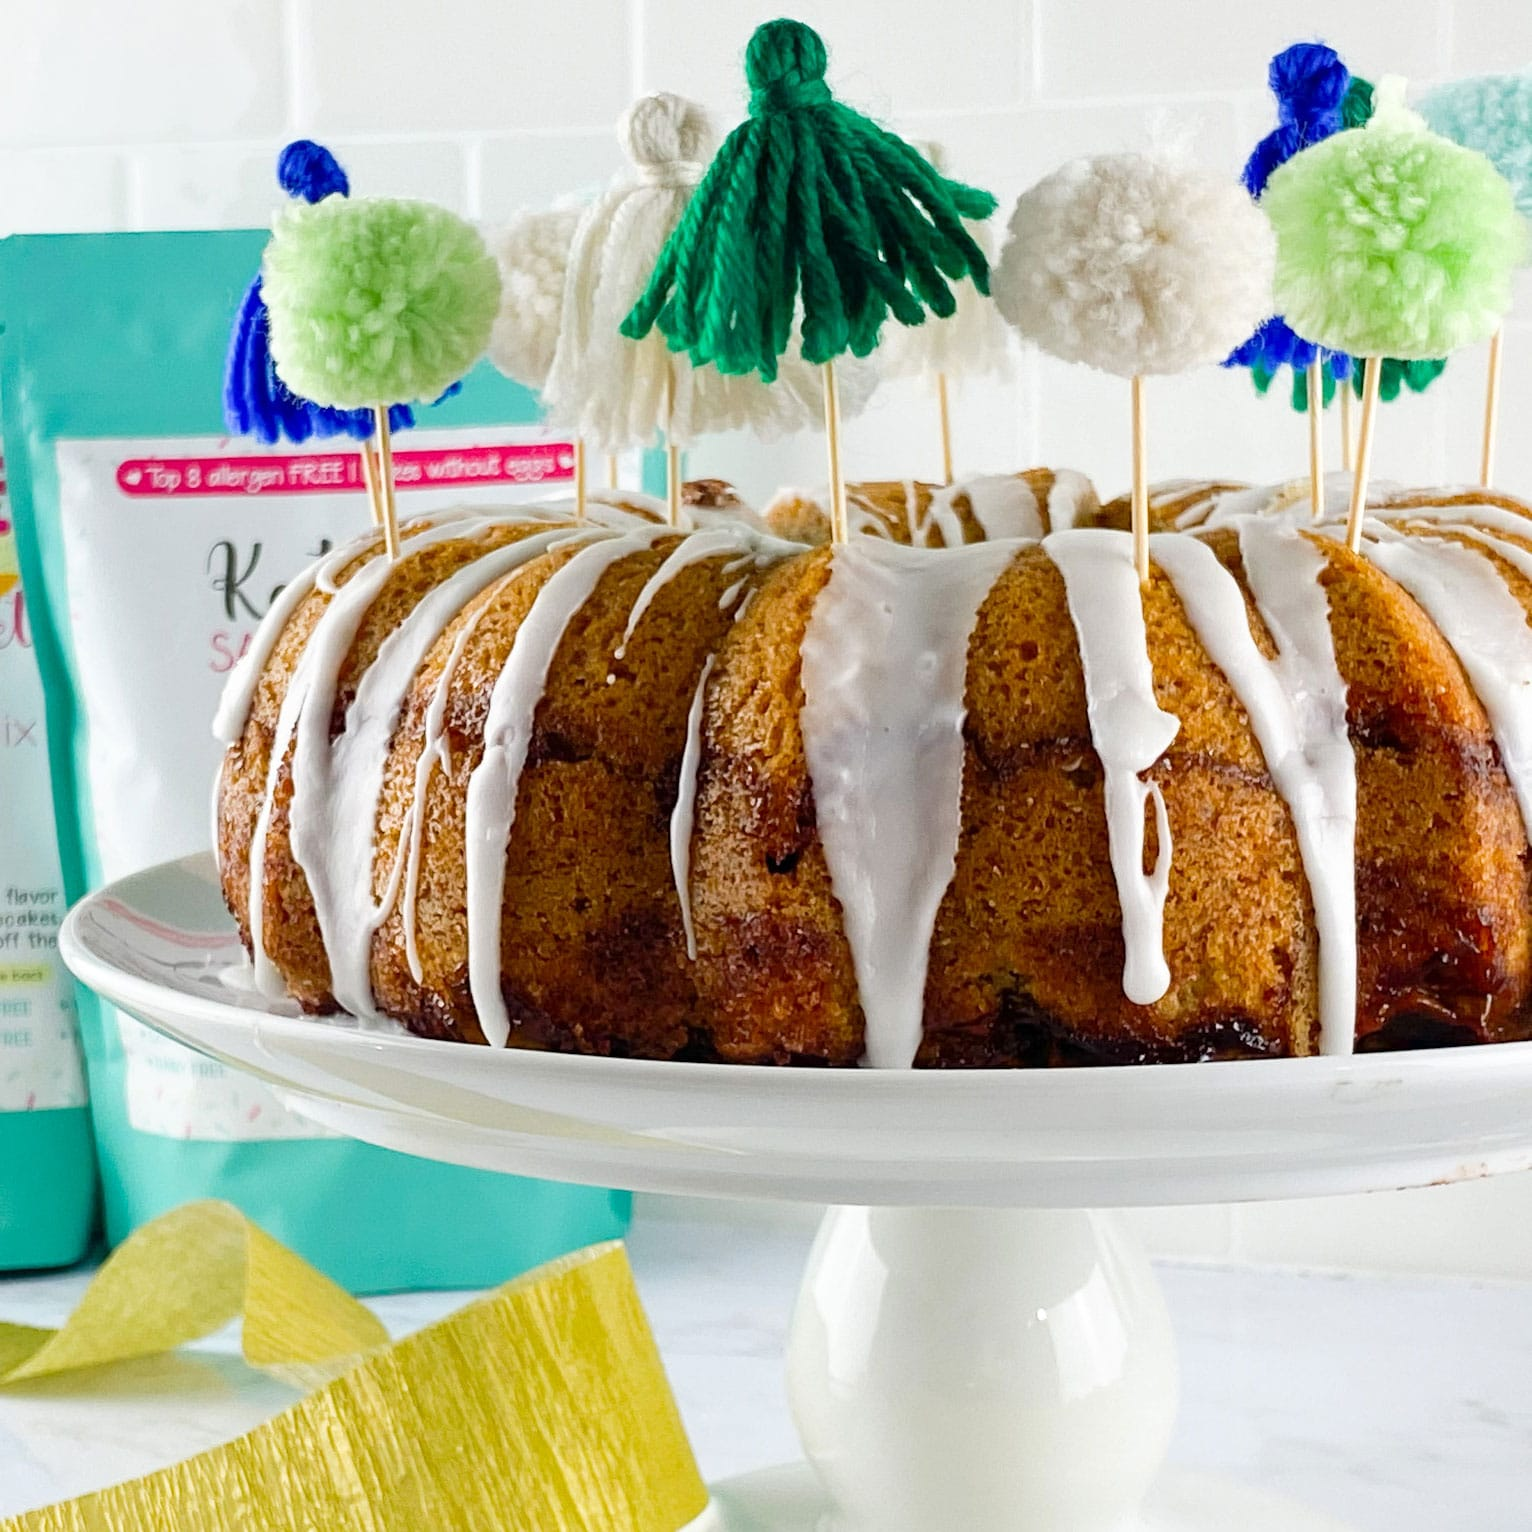 Kate's-Safe-and-Sweet---Jewish-Apple-Cake---Cake-with-mixes-behind